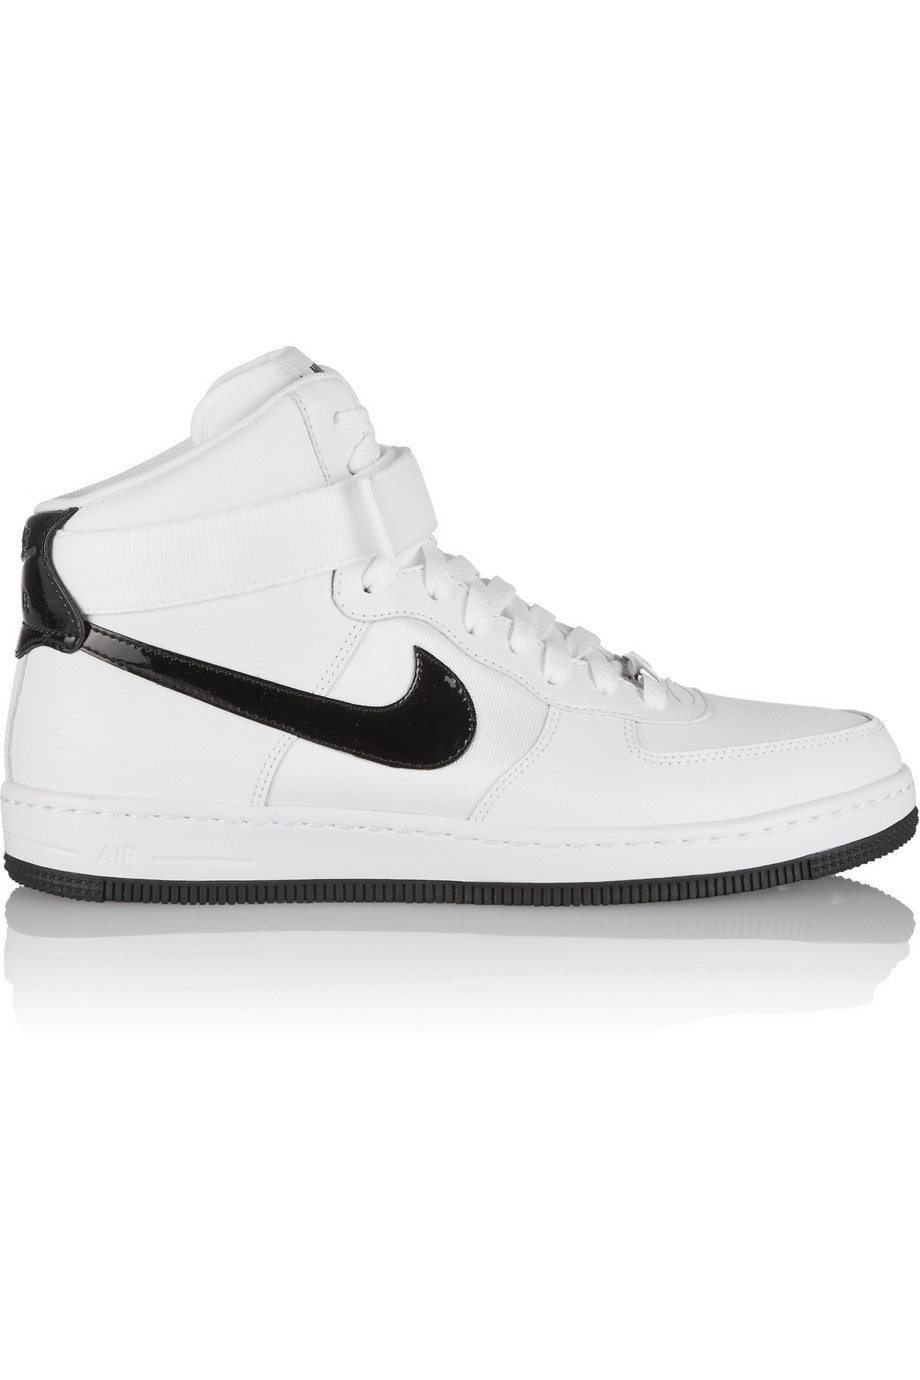 nike air force 1 ultra force leather and canvas sneakers. Black Bedroom Furniture Sets. Home Design Ideas